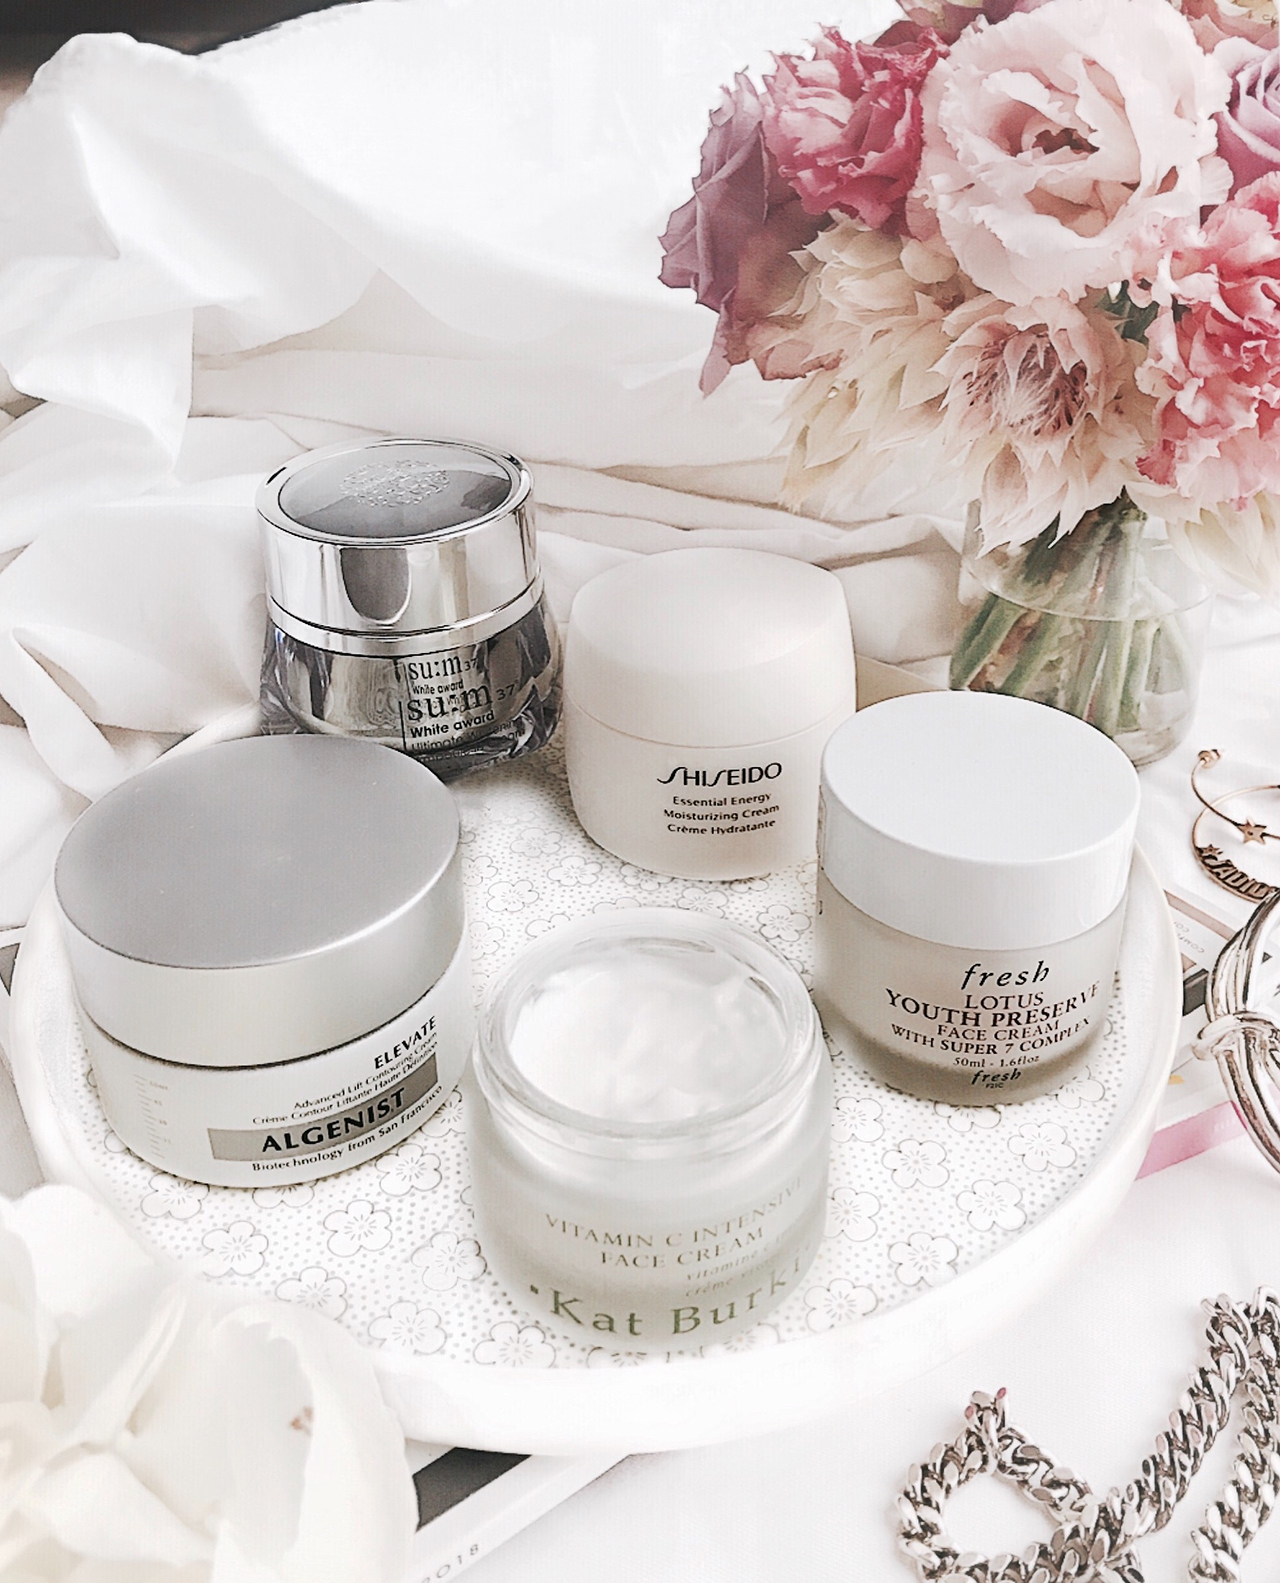 Antiaging night creams - Shiseido Essential Energy, Fresh Lotus Youth Preserve, Su:m37 White Award Ultimate Whitening Ampoule in Cream, Alienist Elevate Cream